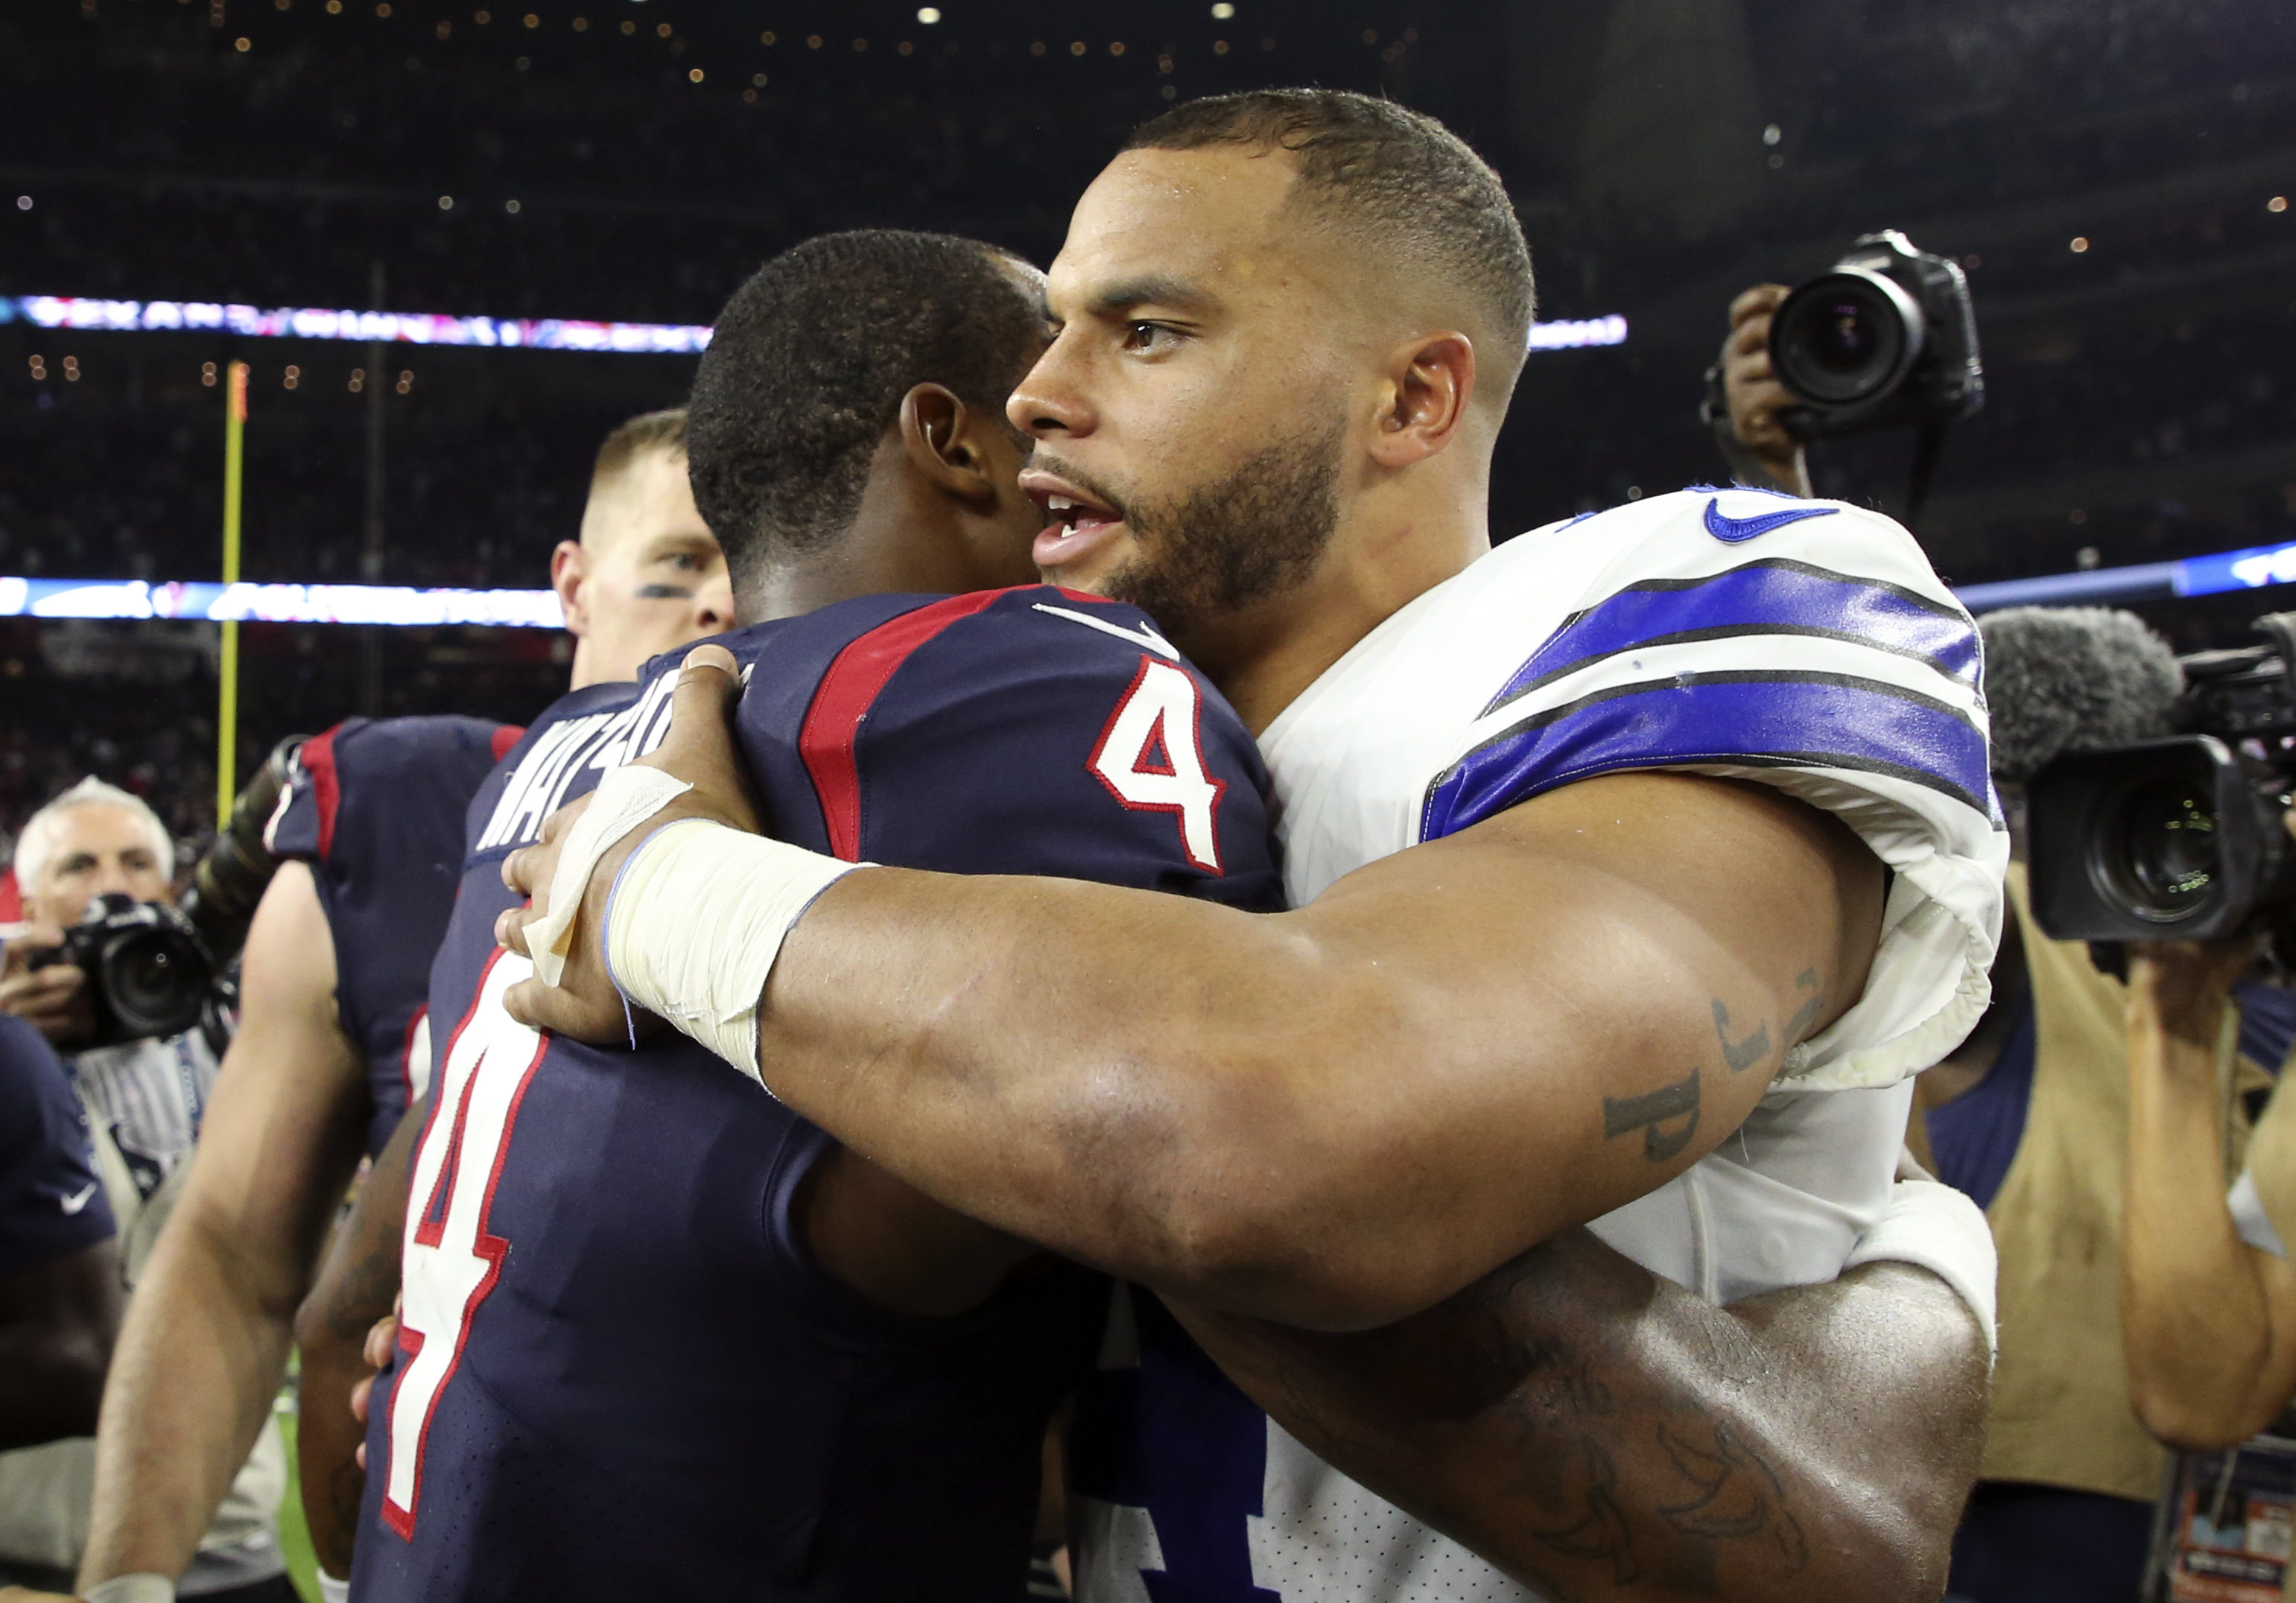 Oct 7, 2018; Houston, TX, USA; Dallas Cowboys quarterback Dak Prescott (4) and Houston Texans quarterback Deshaun Watson (4) hug after the game at NRG Stadium. Mandatory Credit: Kevin Jairaj-USA TODAY Sports